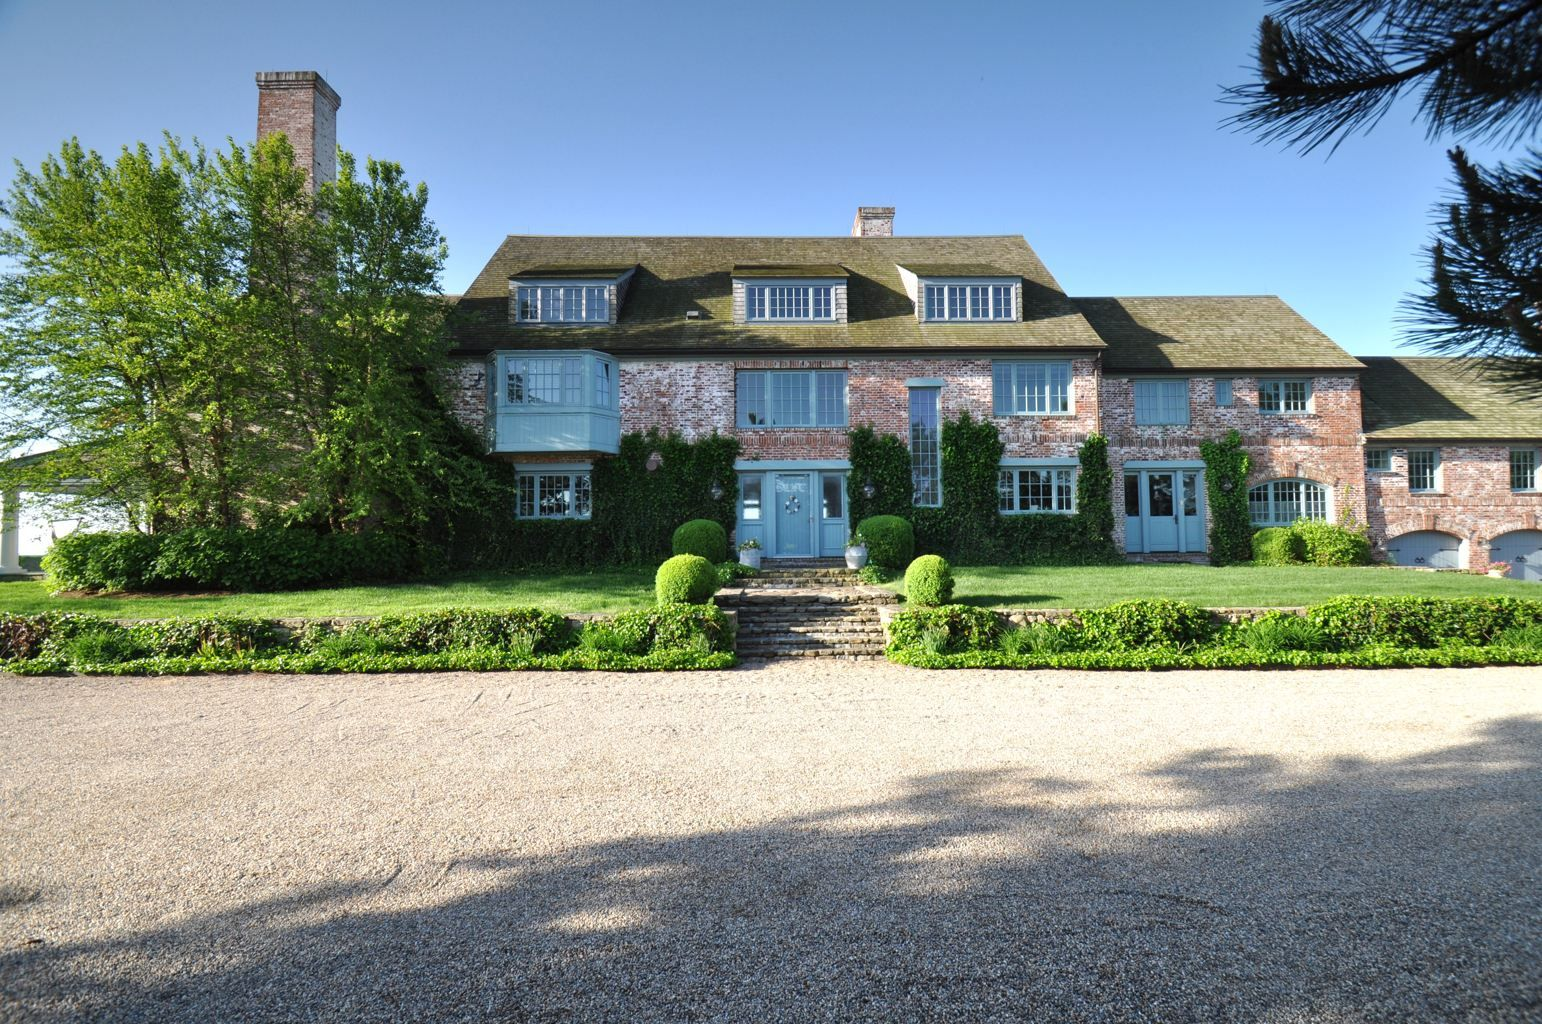 Katharine Hepburn S Paradise In Fenwick Connecticut Hollywood Homes Celebrity Houses American Mansions